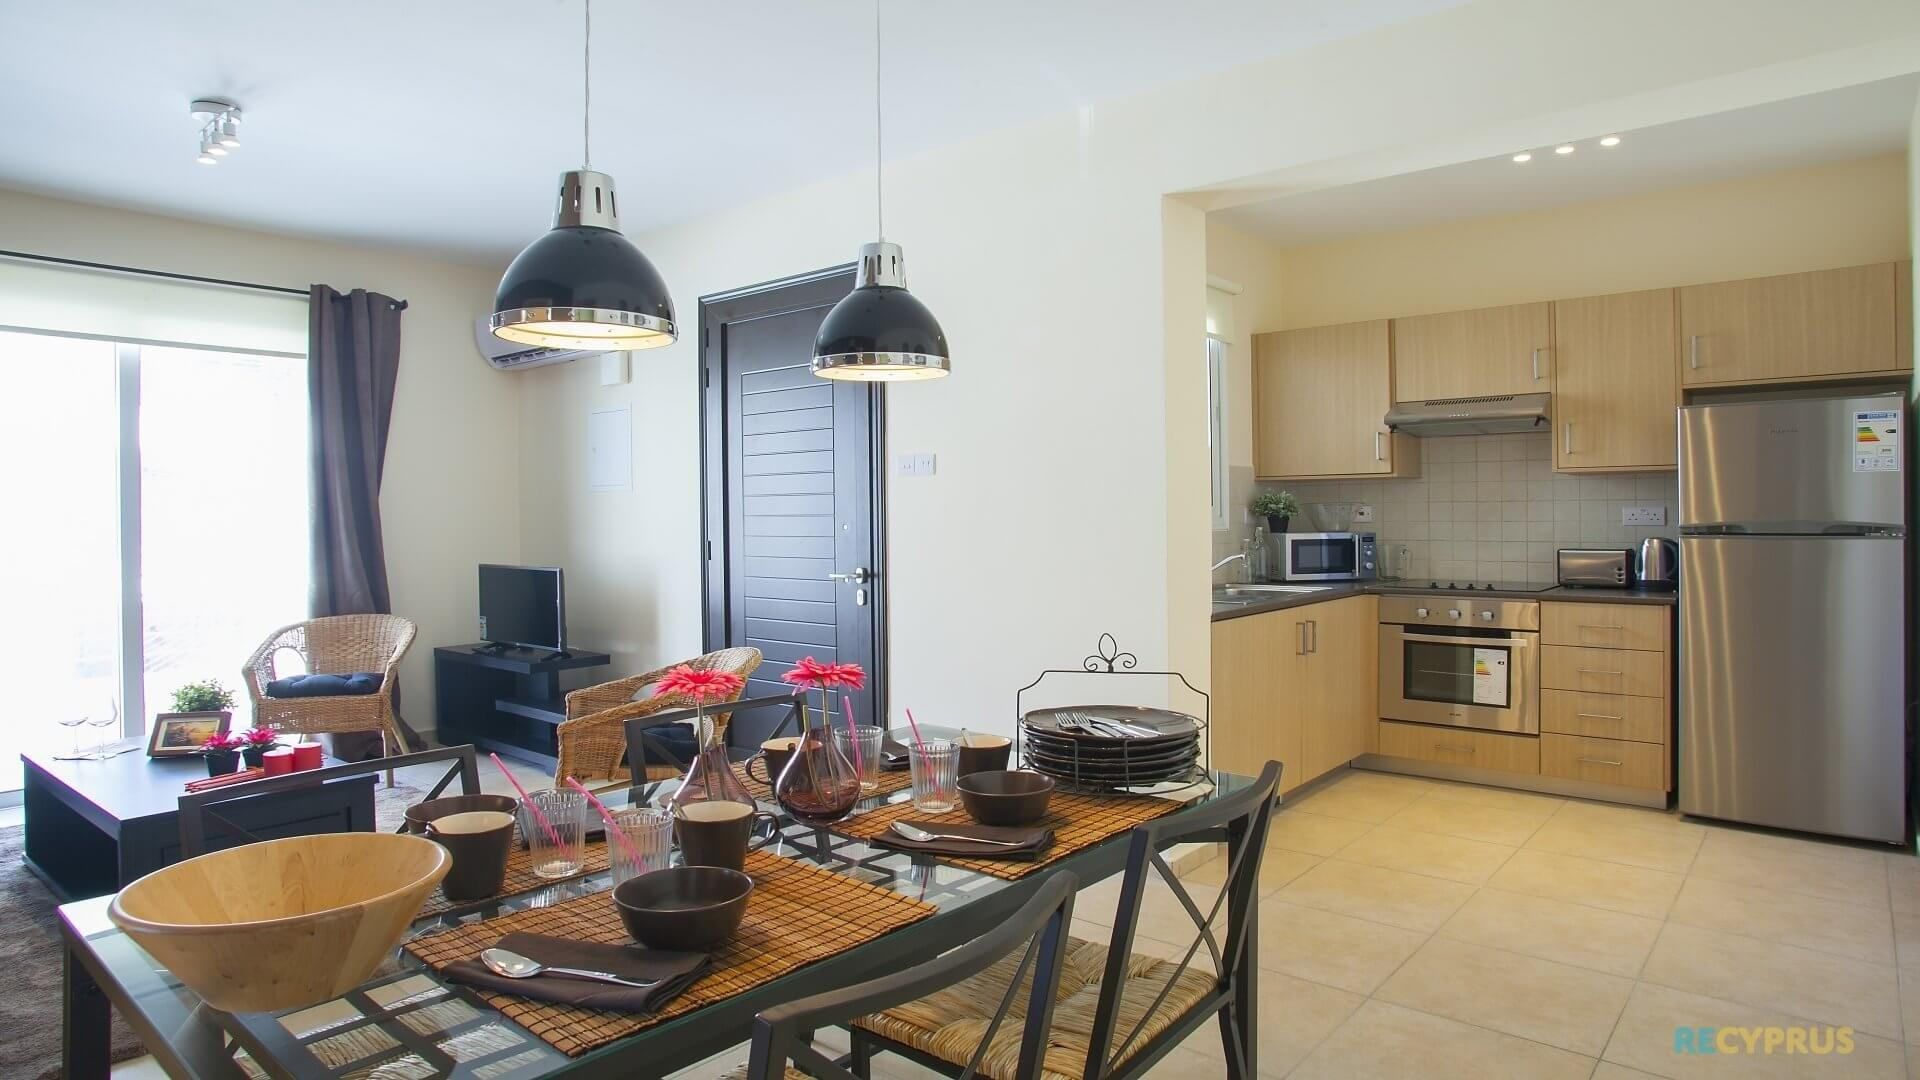 Apartment for sale Kapparis Famagusta Cyprus 3 3442